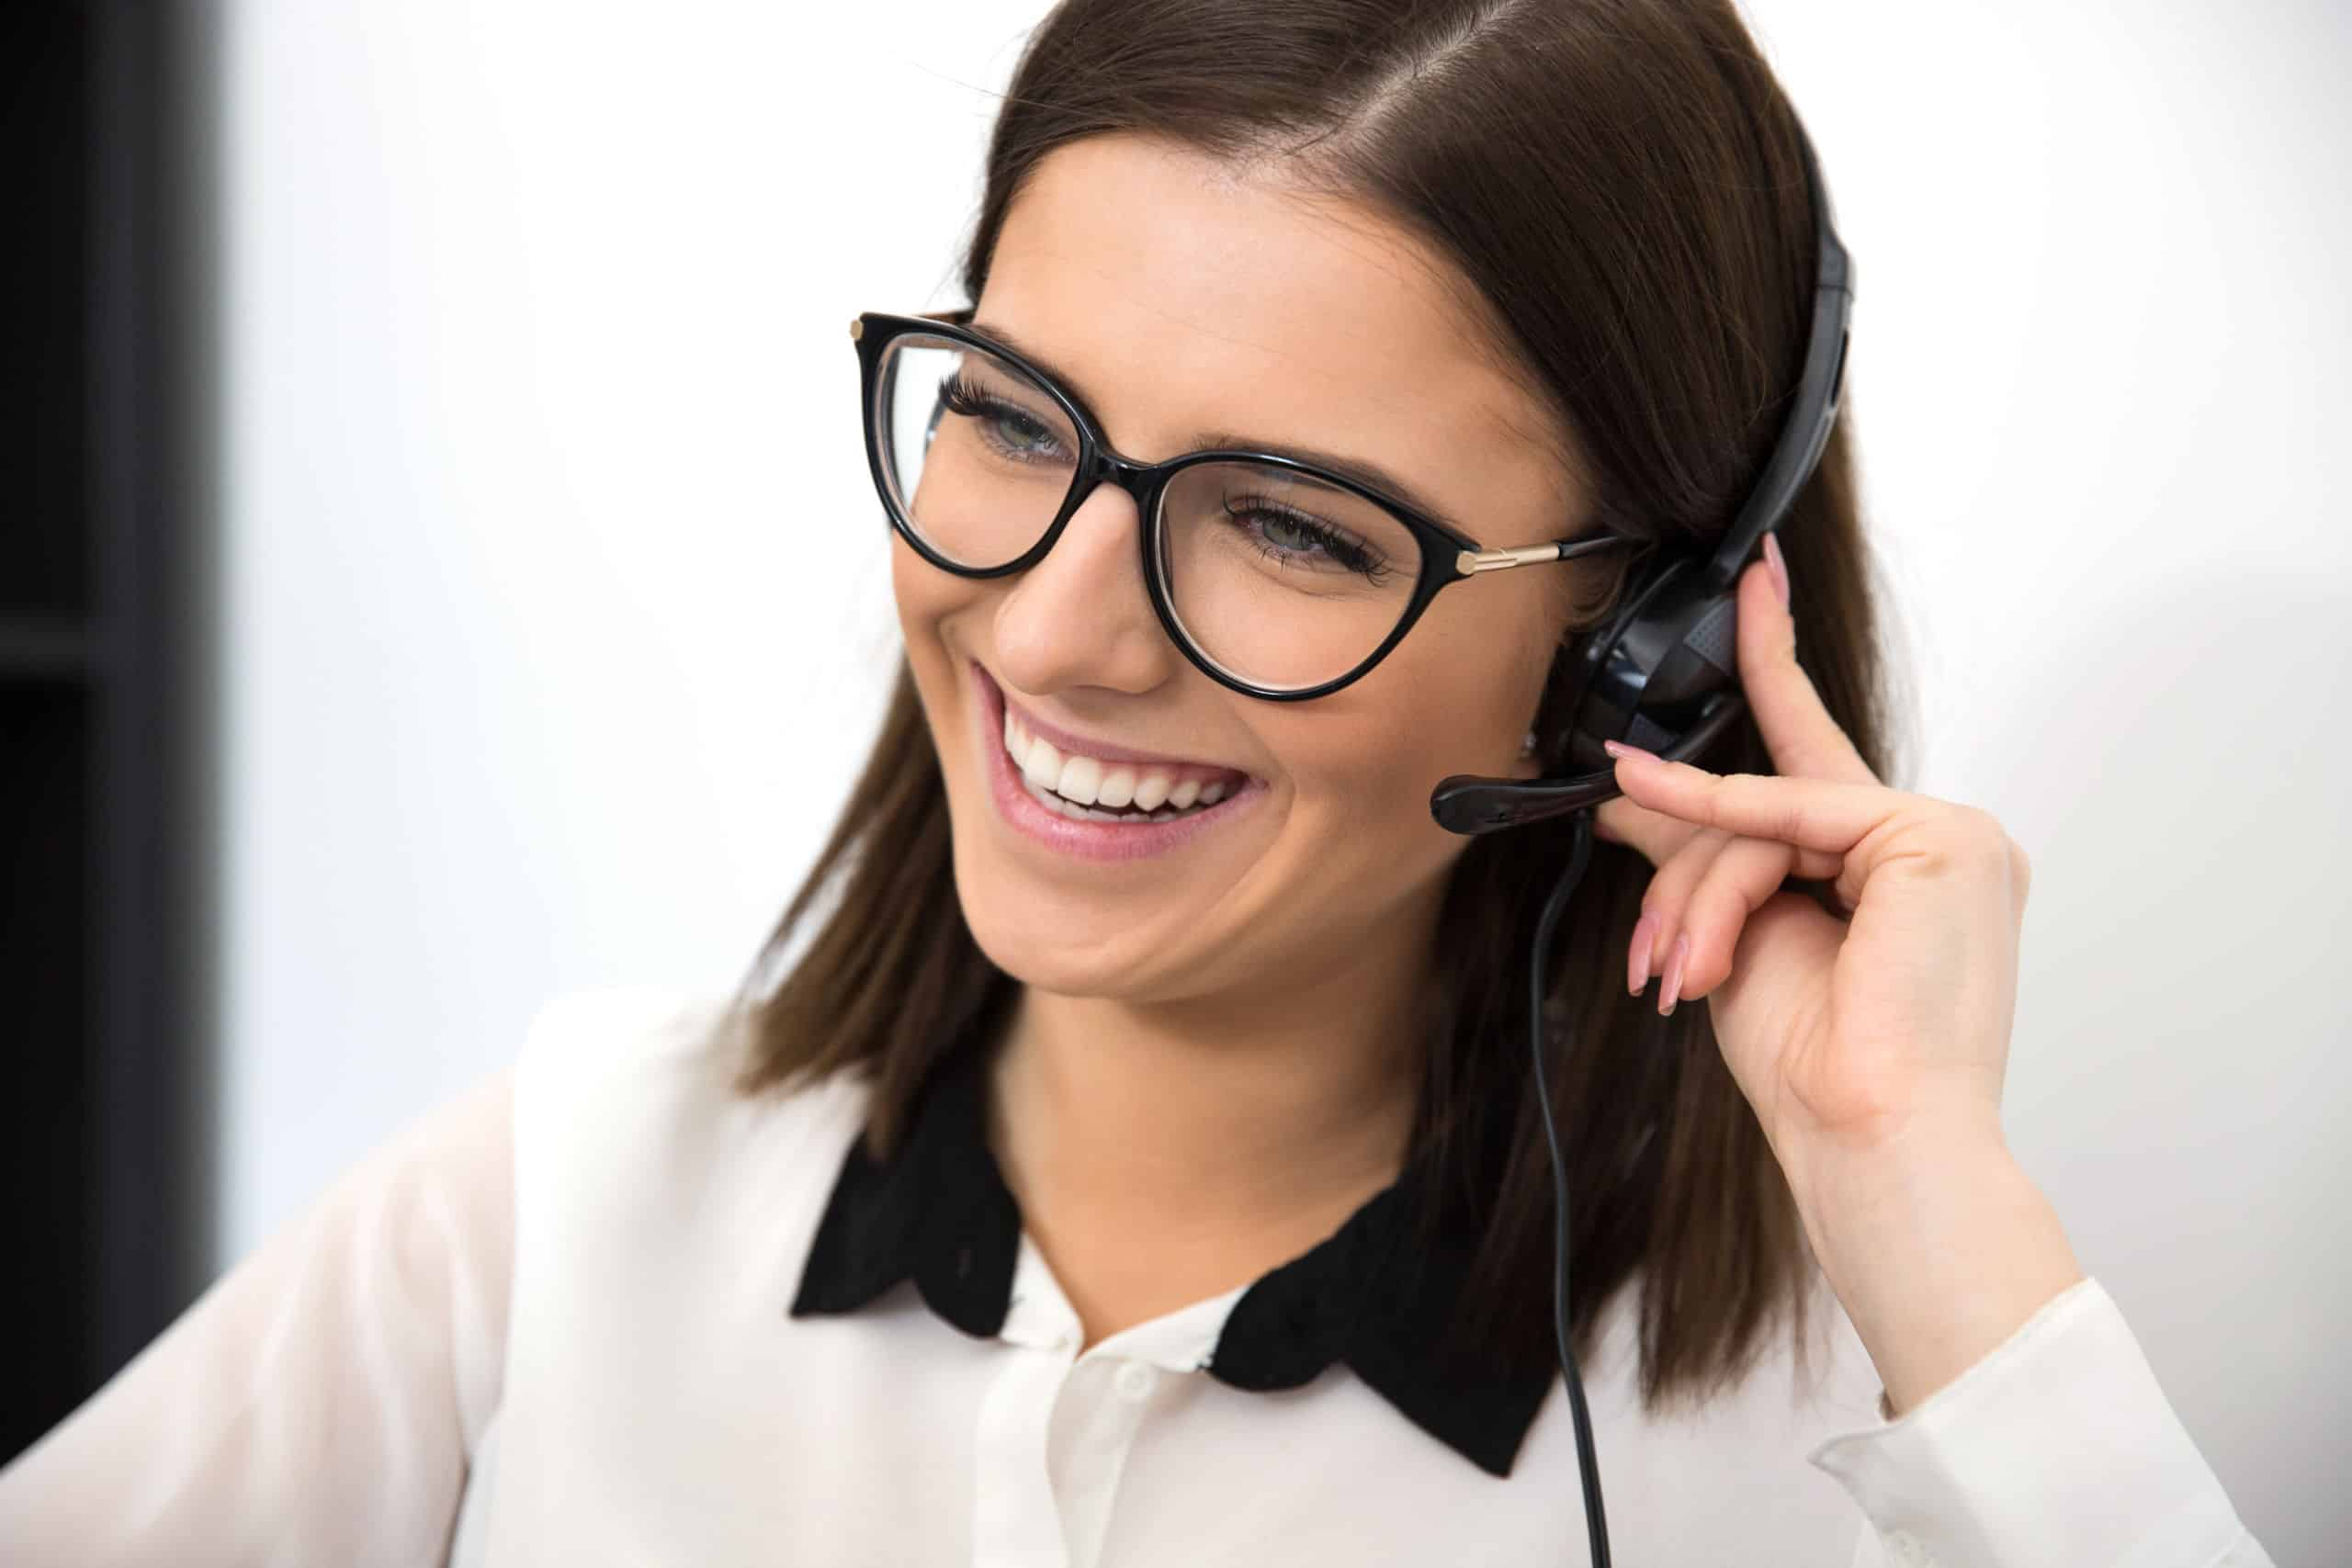 Home-Based Phone Support Jobs with Cash App